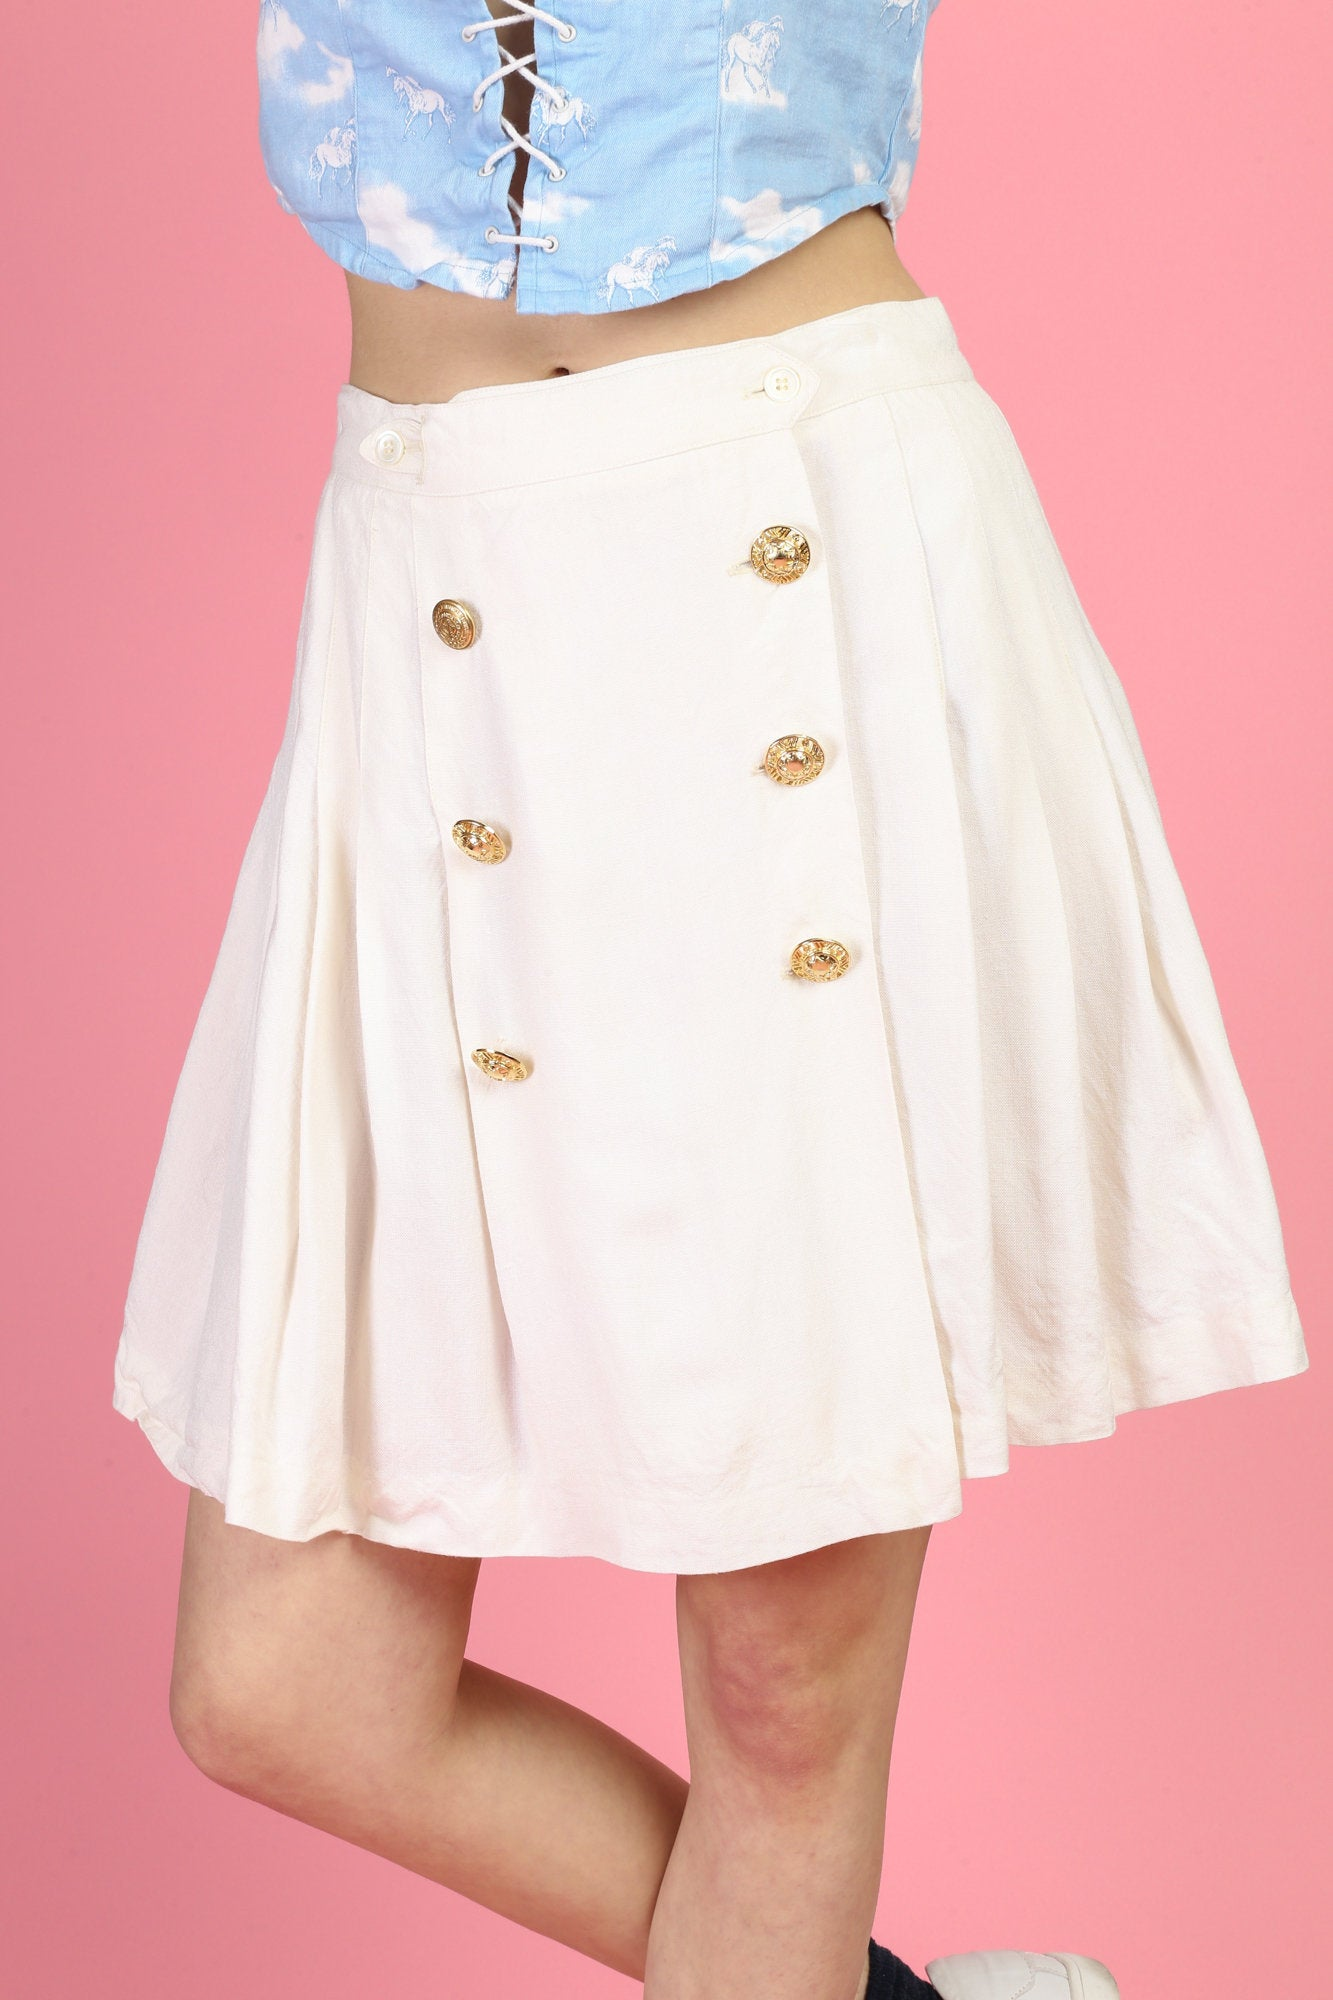 Vintage Pleated Gold Button Skirt - Medium